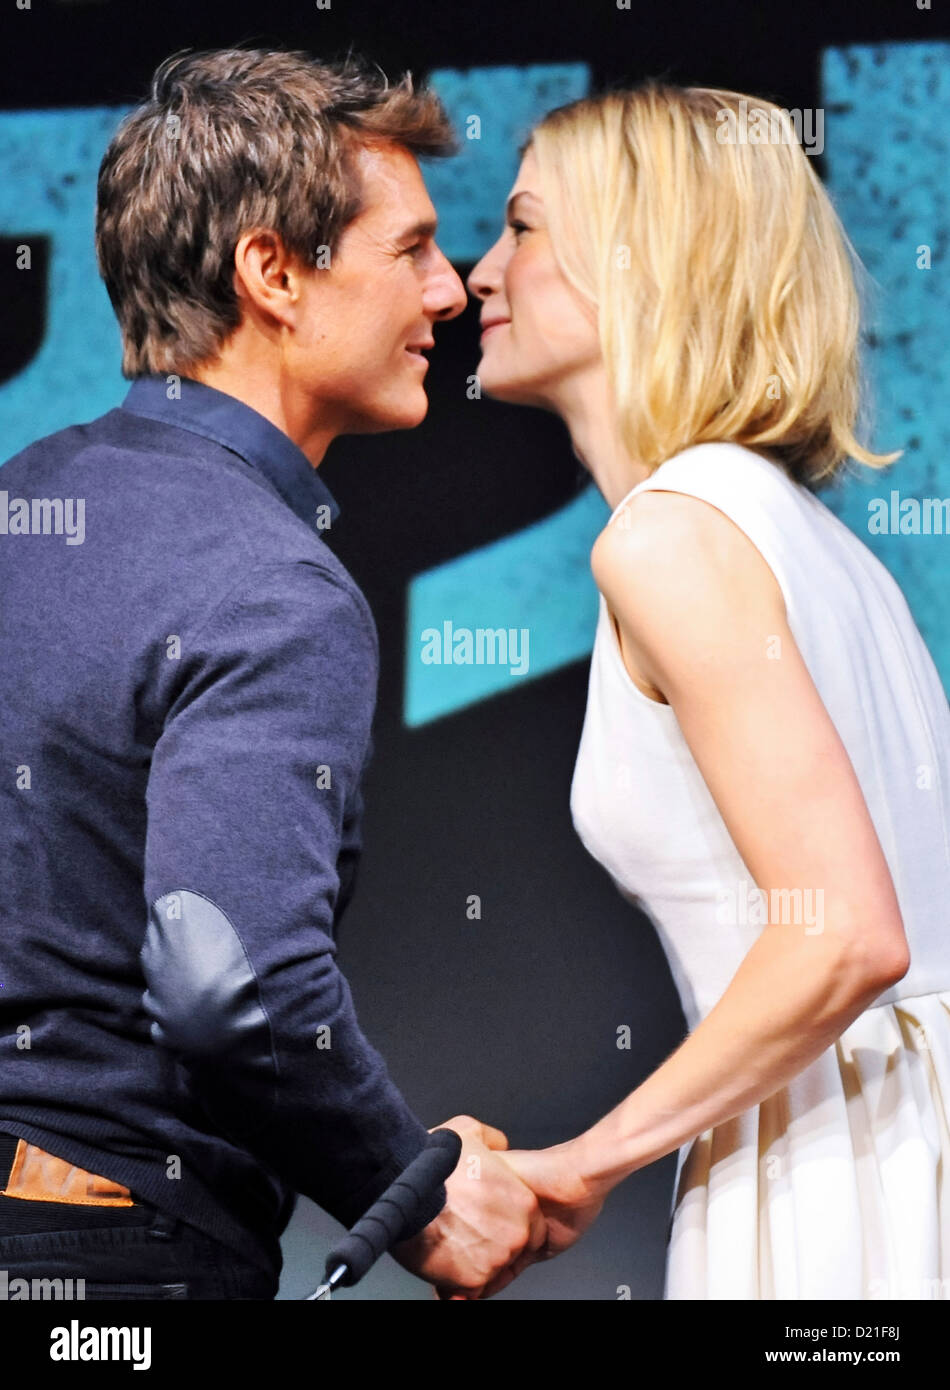 Actress Rosamund Pike and actor Tom Cruise attend the 'Jack Reacher' press conference at the Ritz Carlton - Stock Image